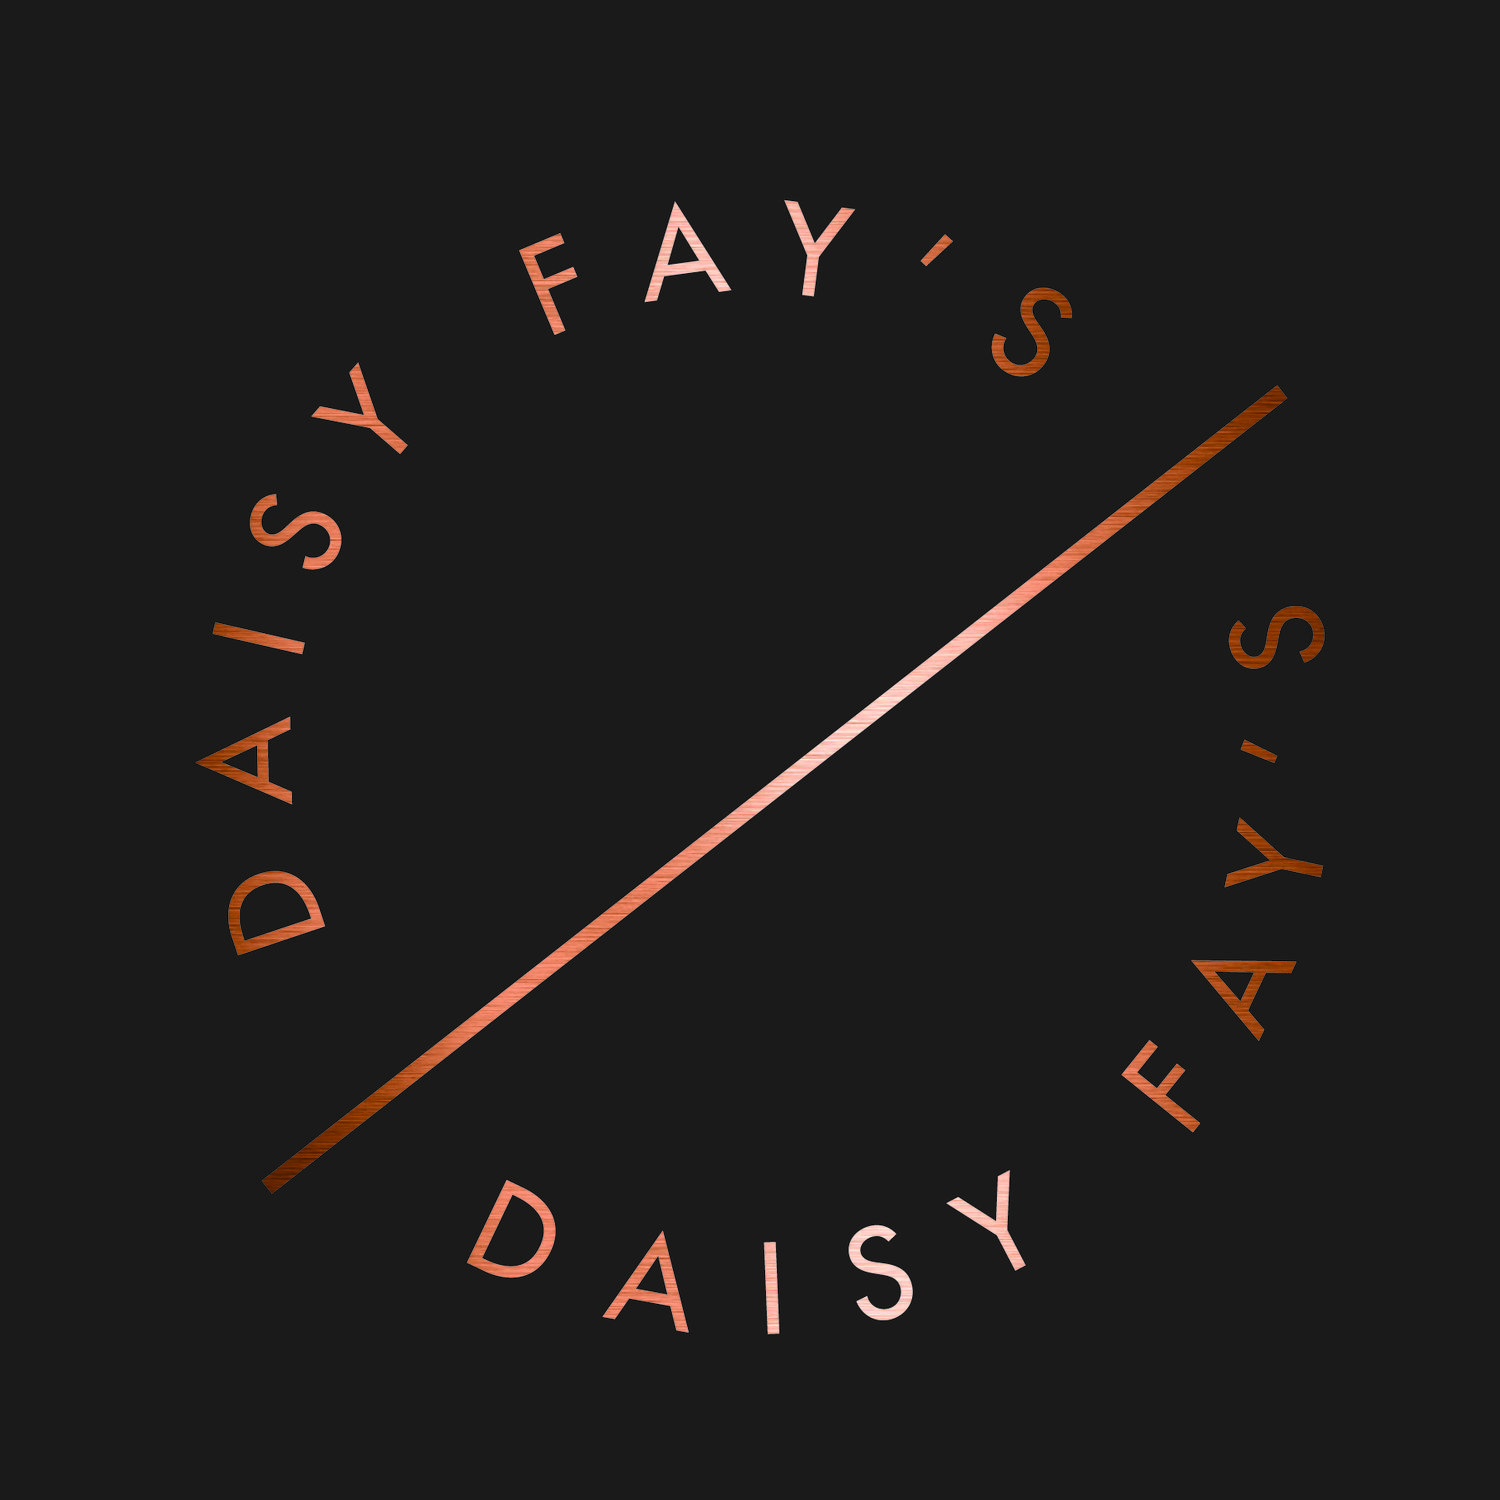 Daisy Fay's Weddings + Events